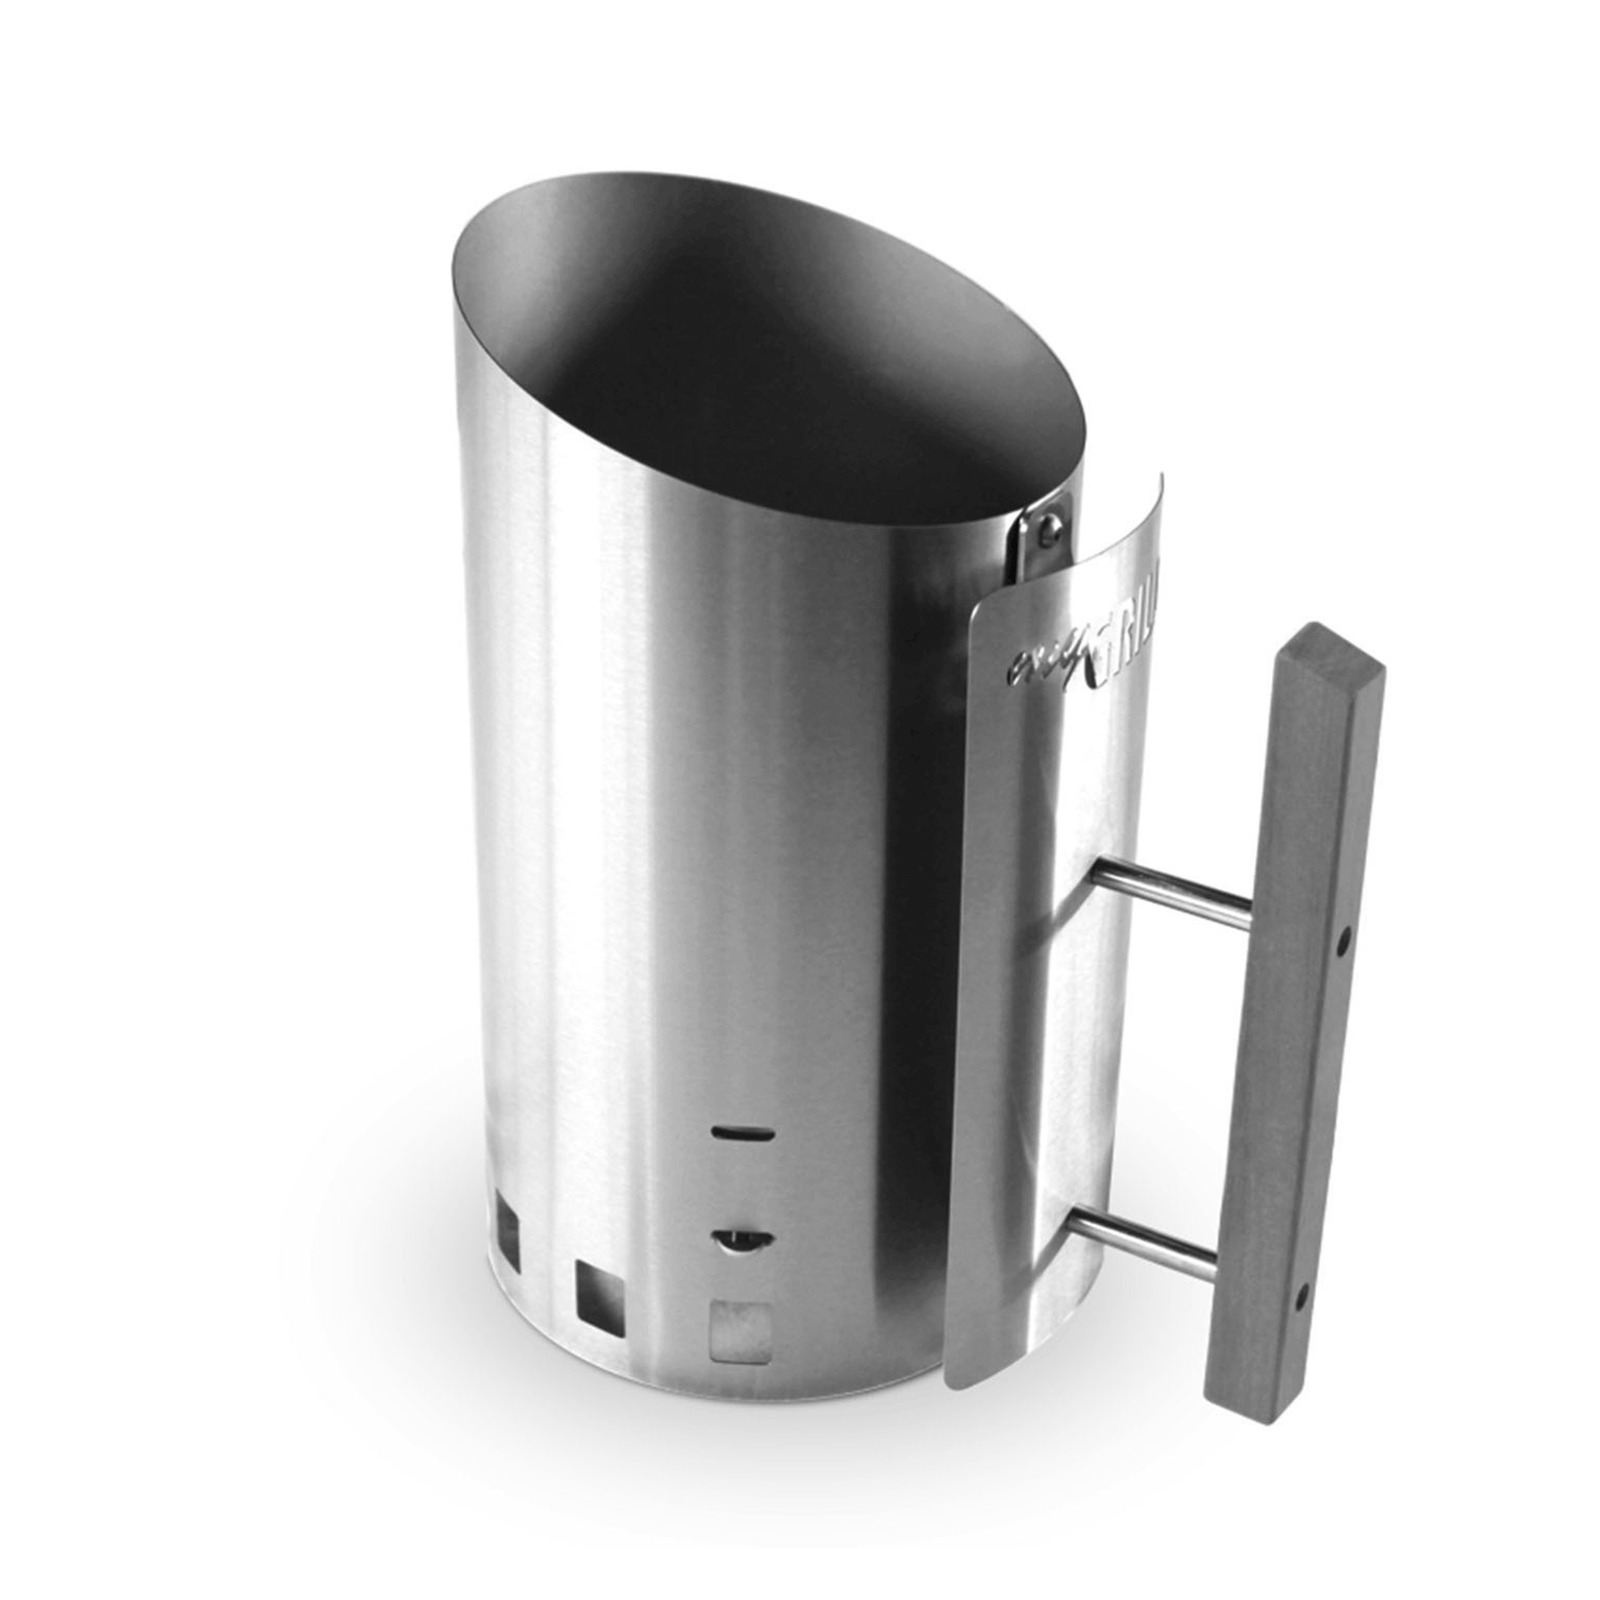 mygrill stainless steel charcoal chimney starter